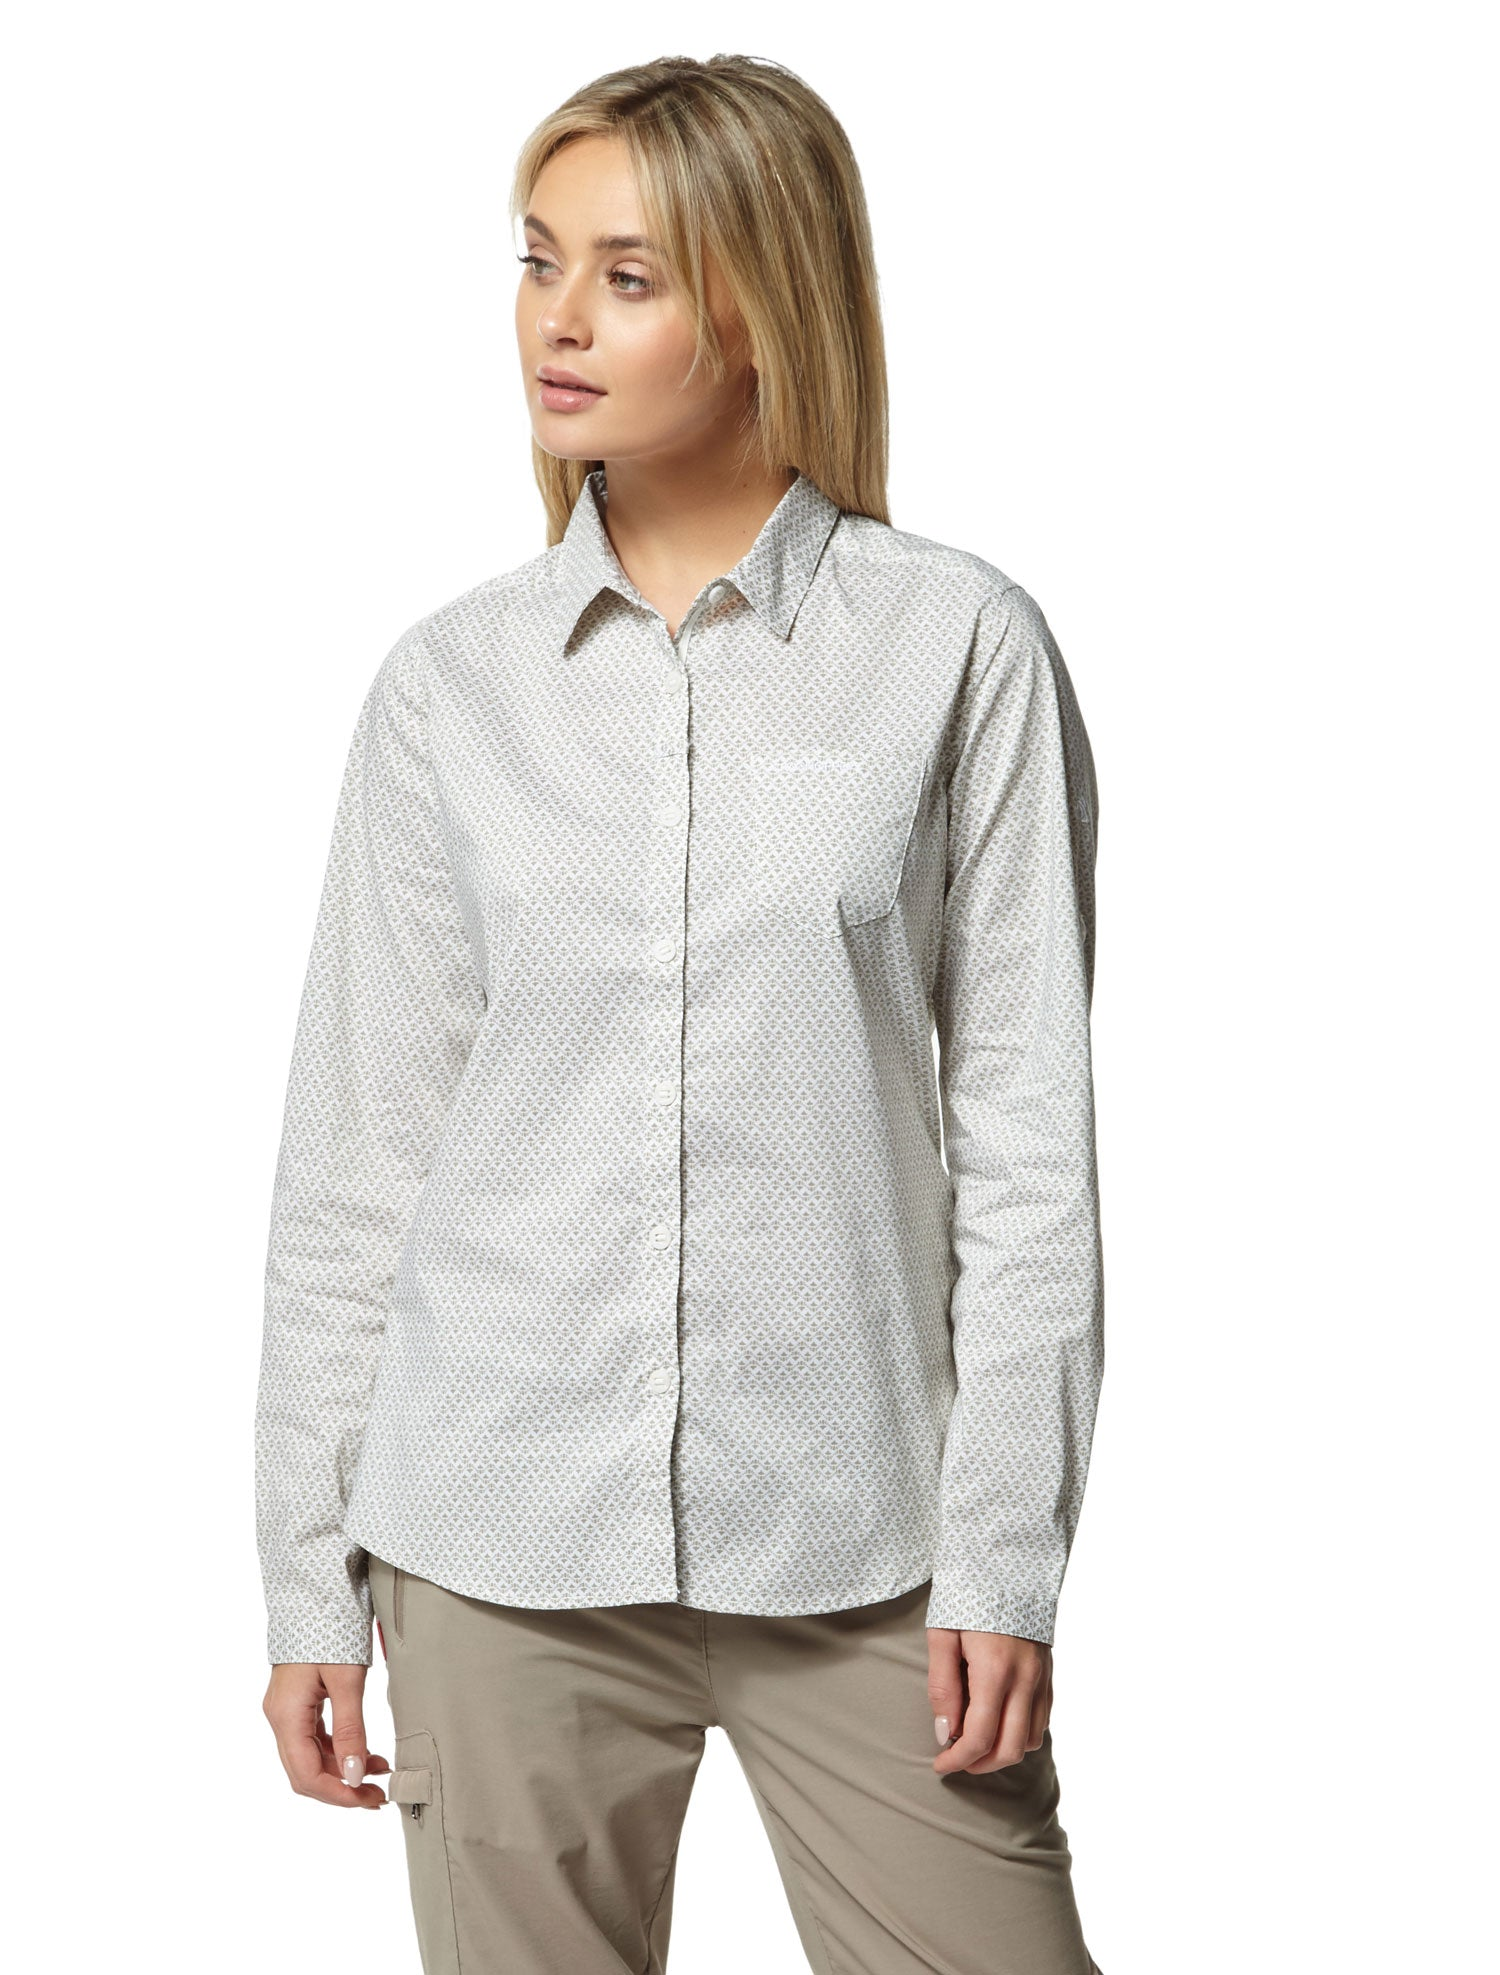 Lady wearing Bush Green Craghoppers NosiLife Verona Long Sleeve Shirt